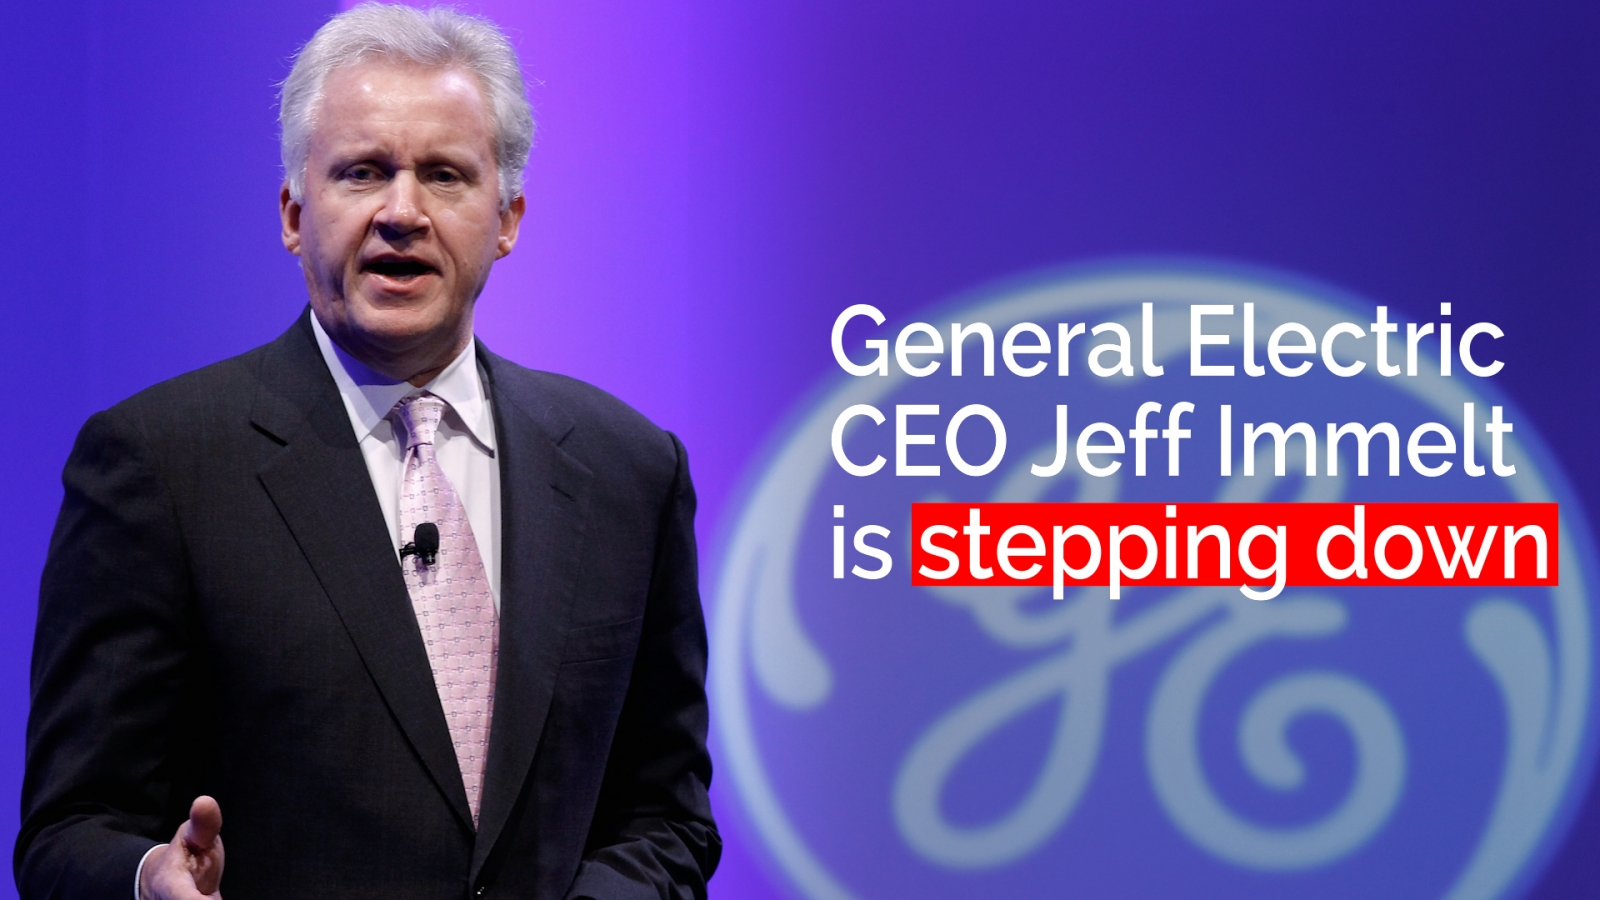 ge-ceo-jeff-immelt-steps-down-succeeded-by-john-flannery